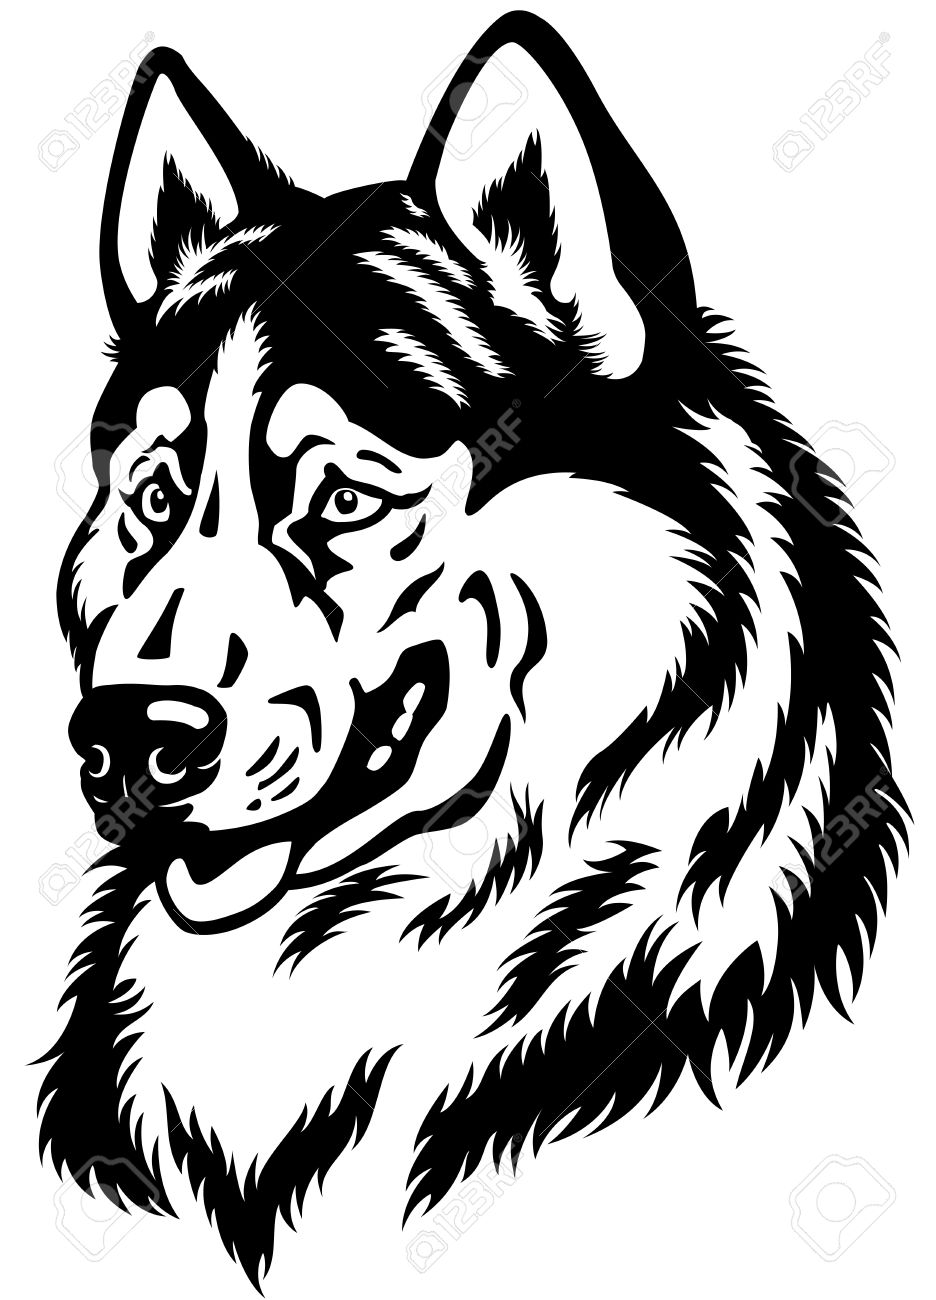 Dog Head, Siberian Husky Breed, Black And White Illustration.